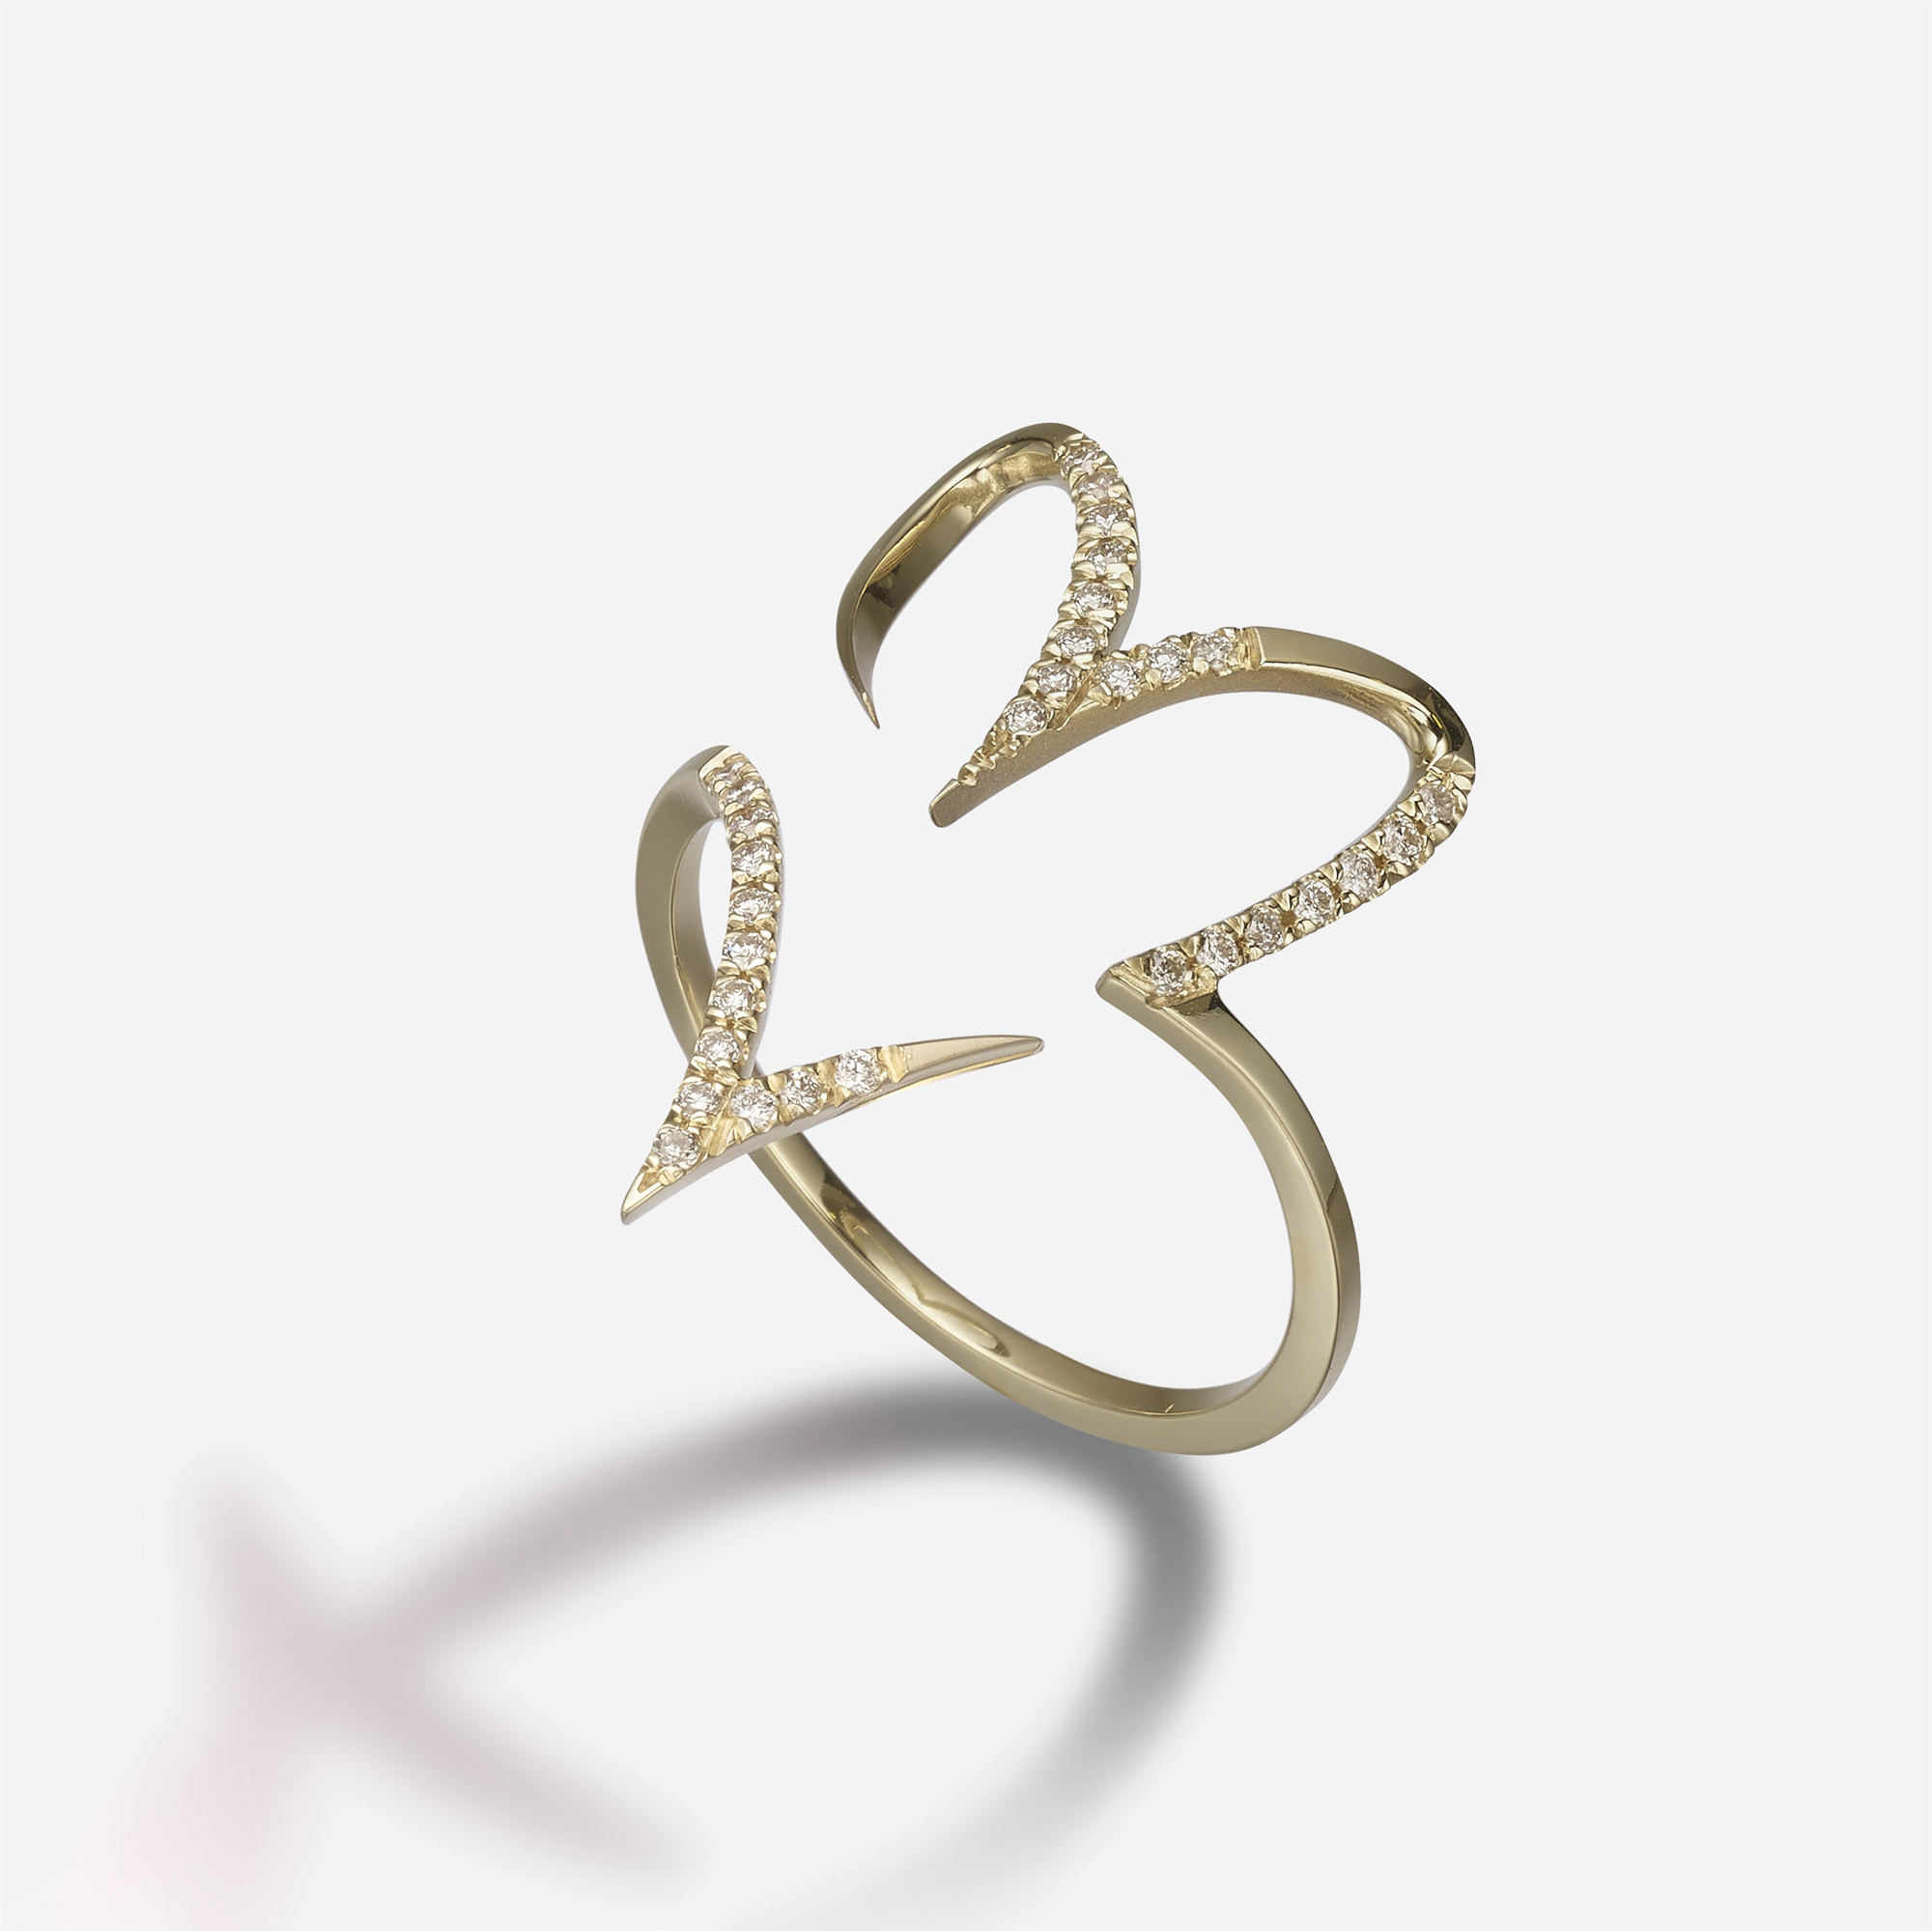 Cursive Heart | Pavé Diamonds Inside Most Up To Date Pavé Hearts Band Rings (Gallery 16 of 25)